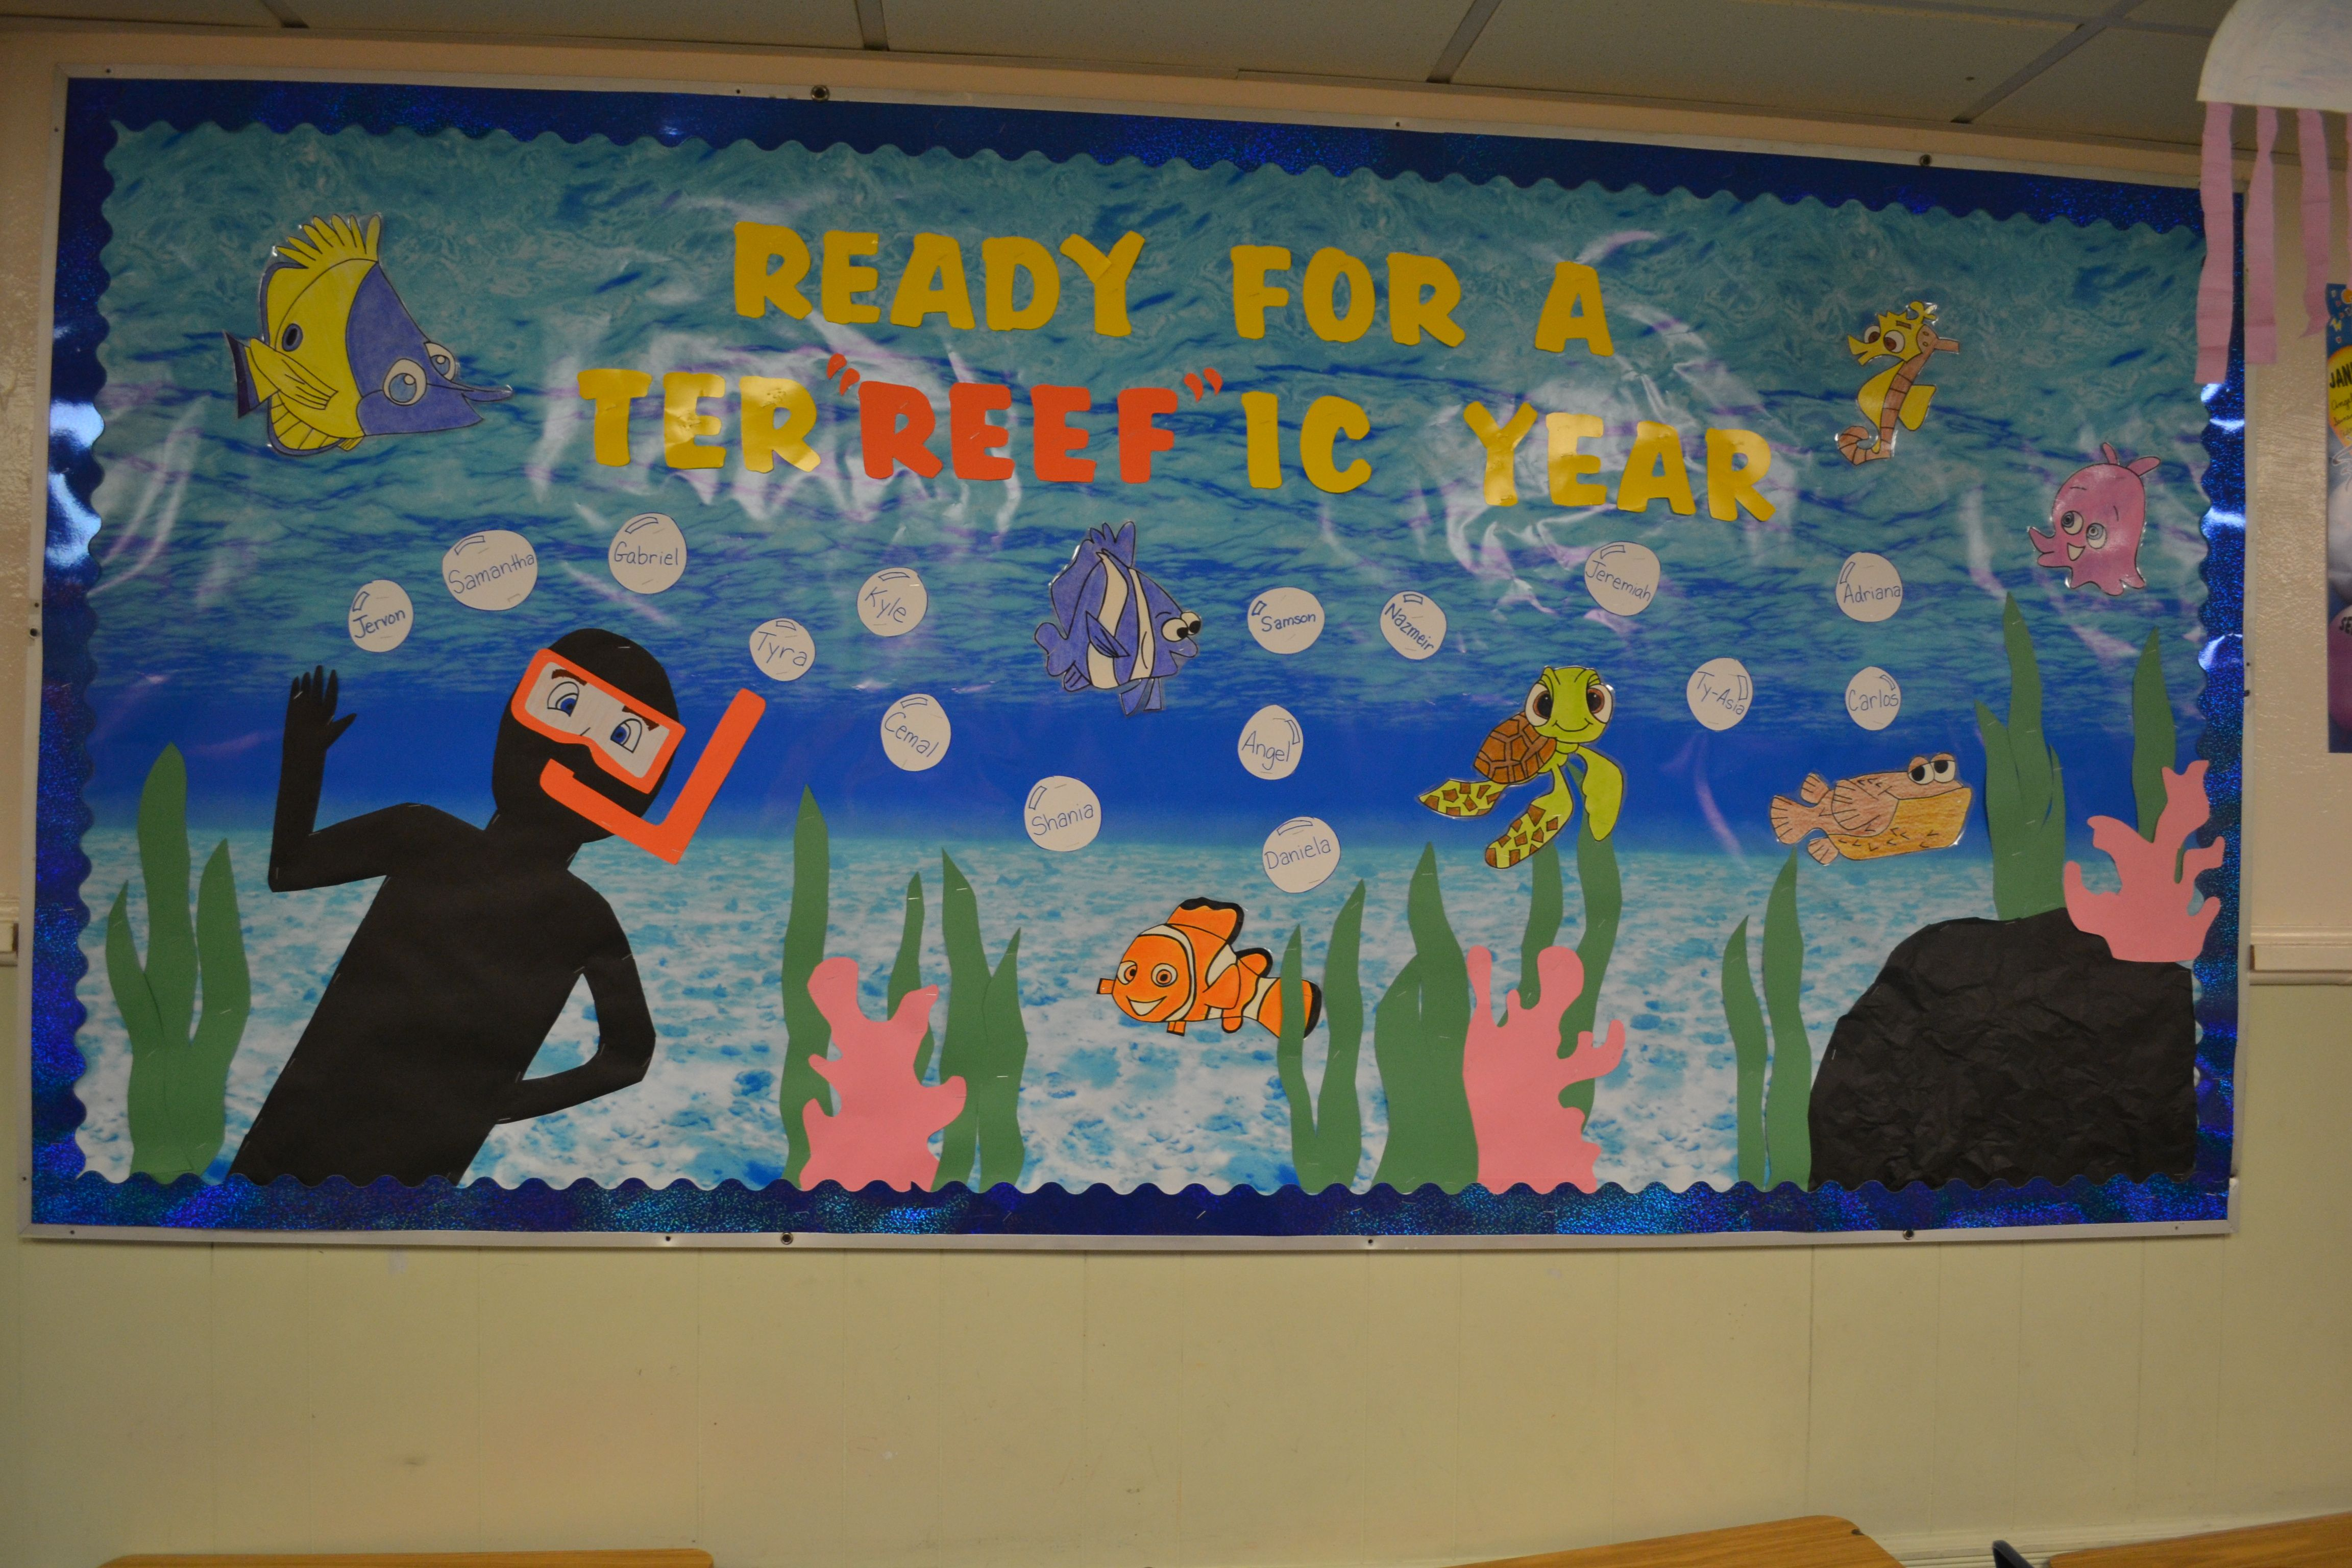 Finding Nemo Themed Classroom Ready For A Ter Reef Ic